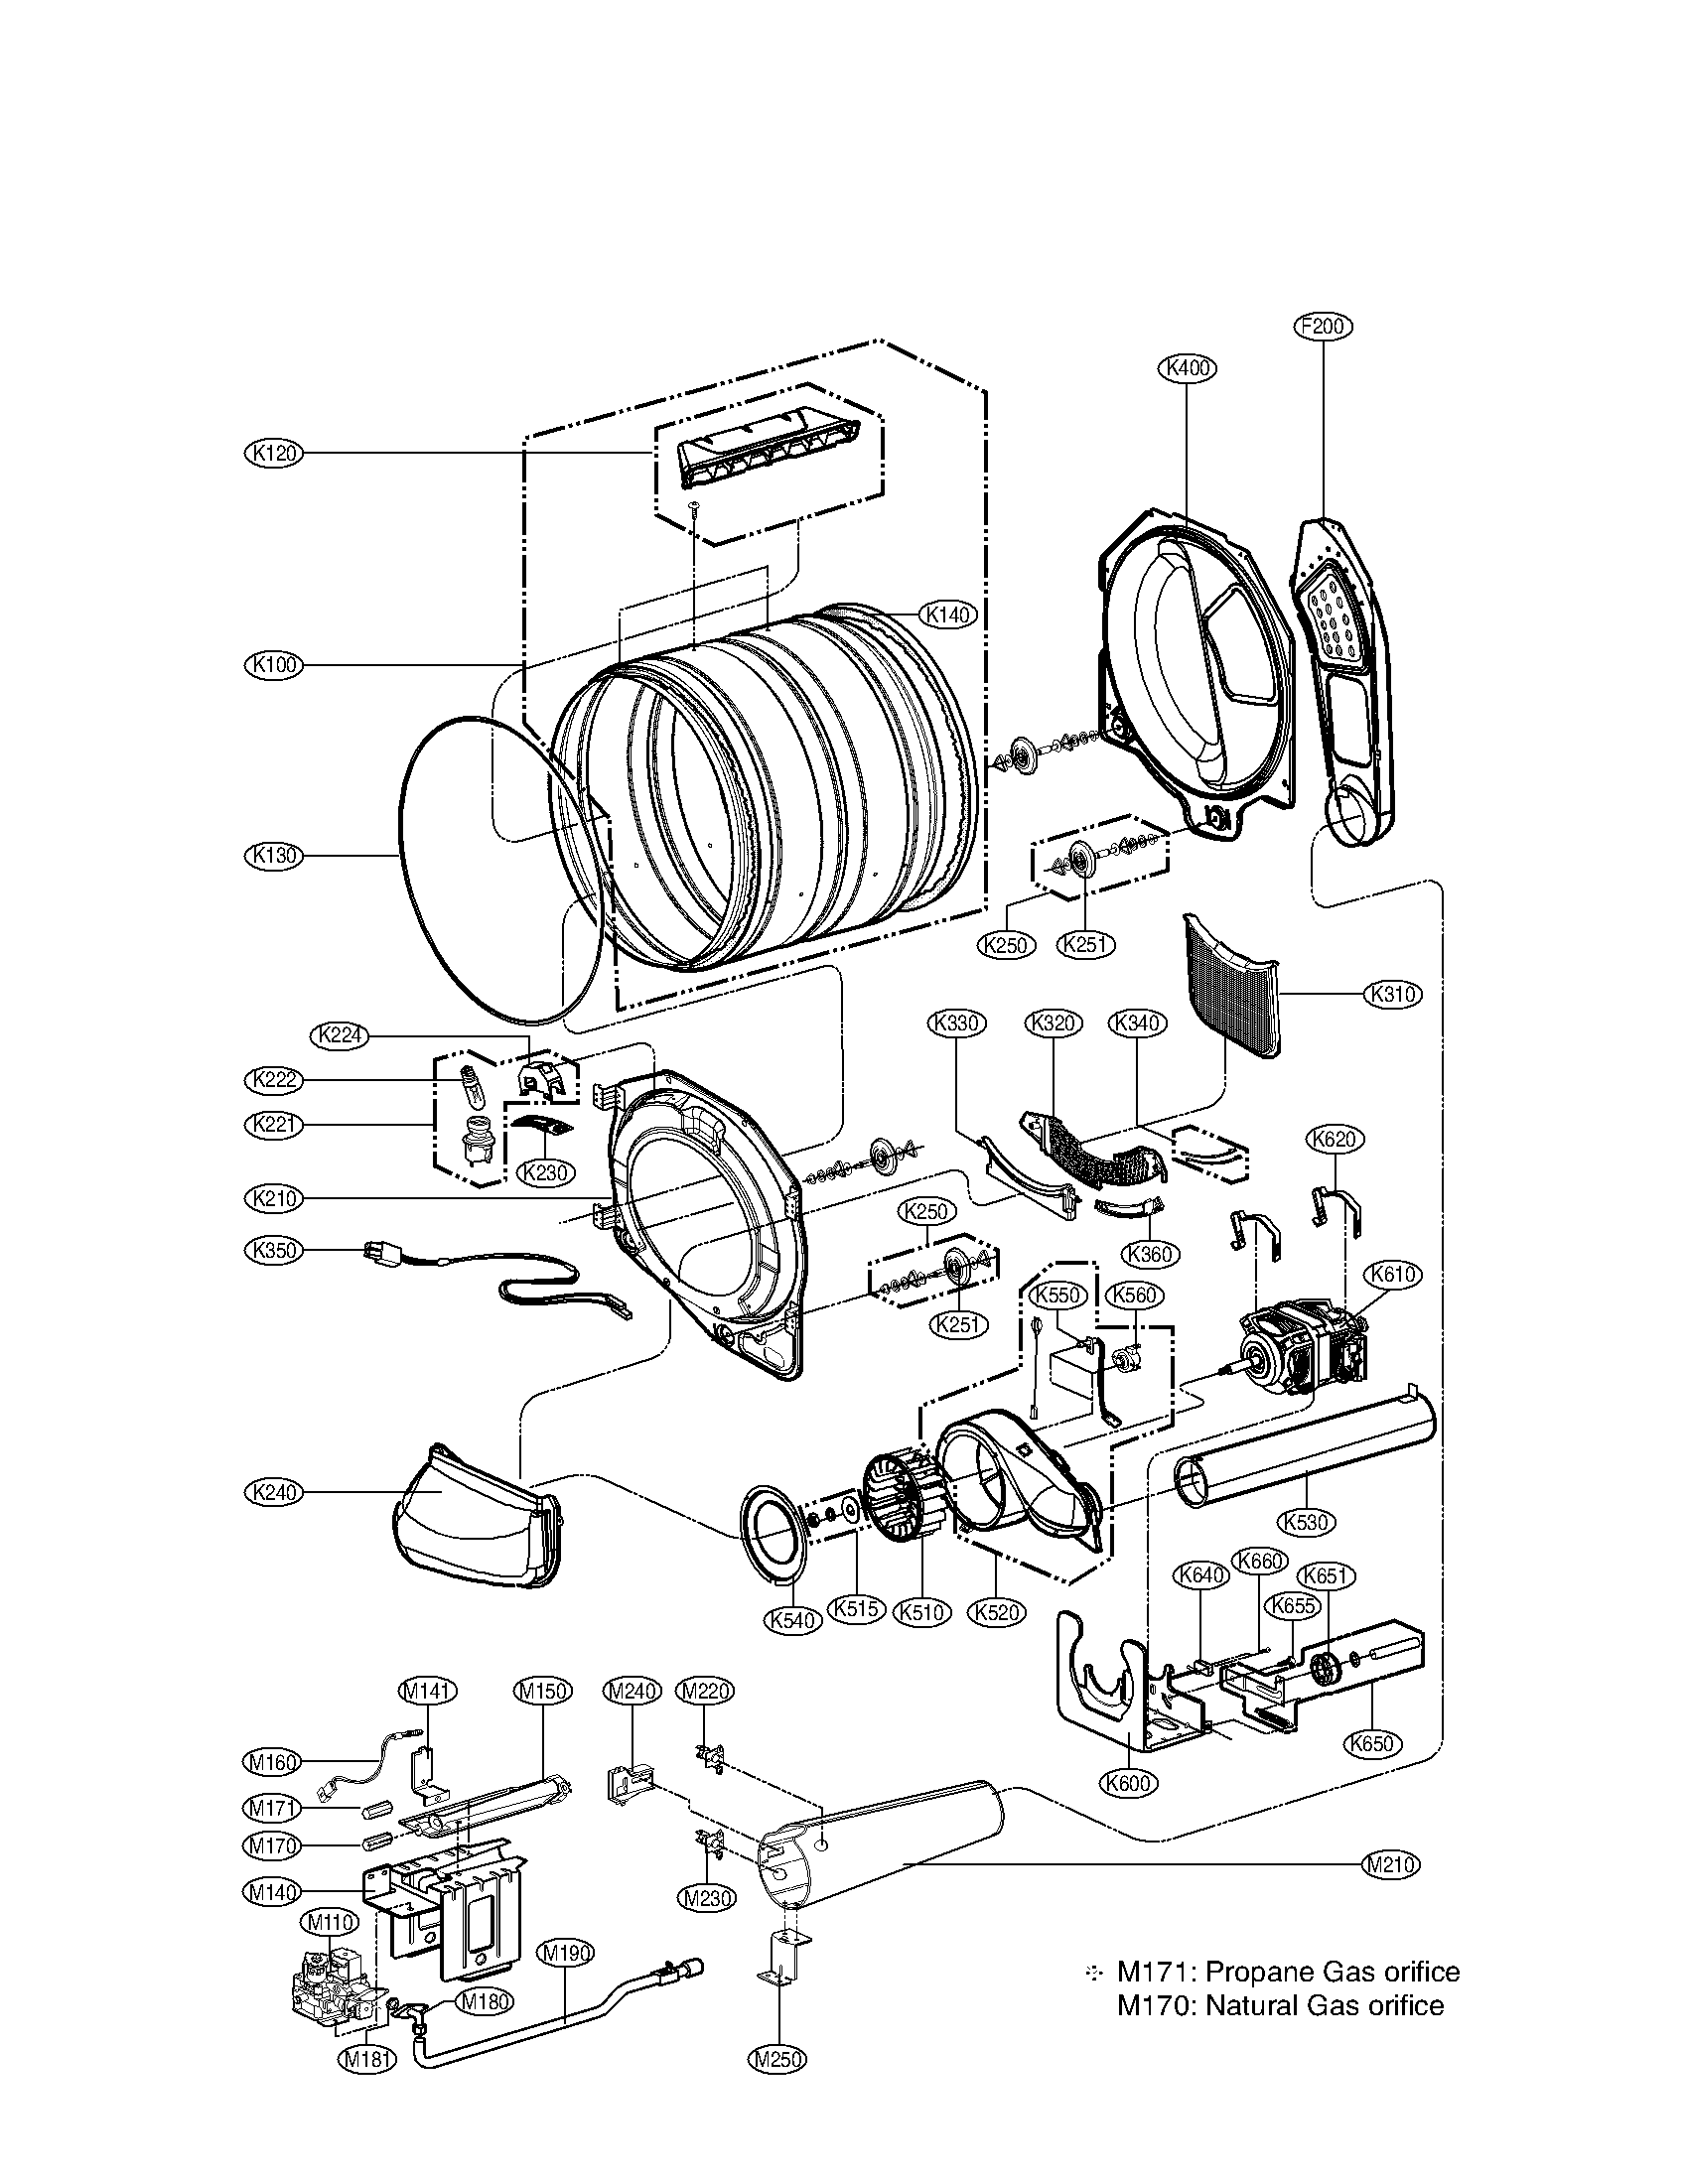 Dryer Motor Ps Sump Pump Motor Wiring Diagram ~ Odicis